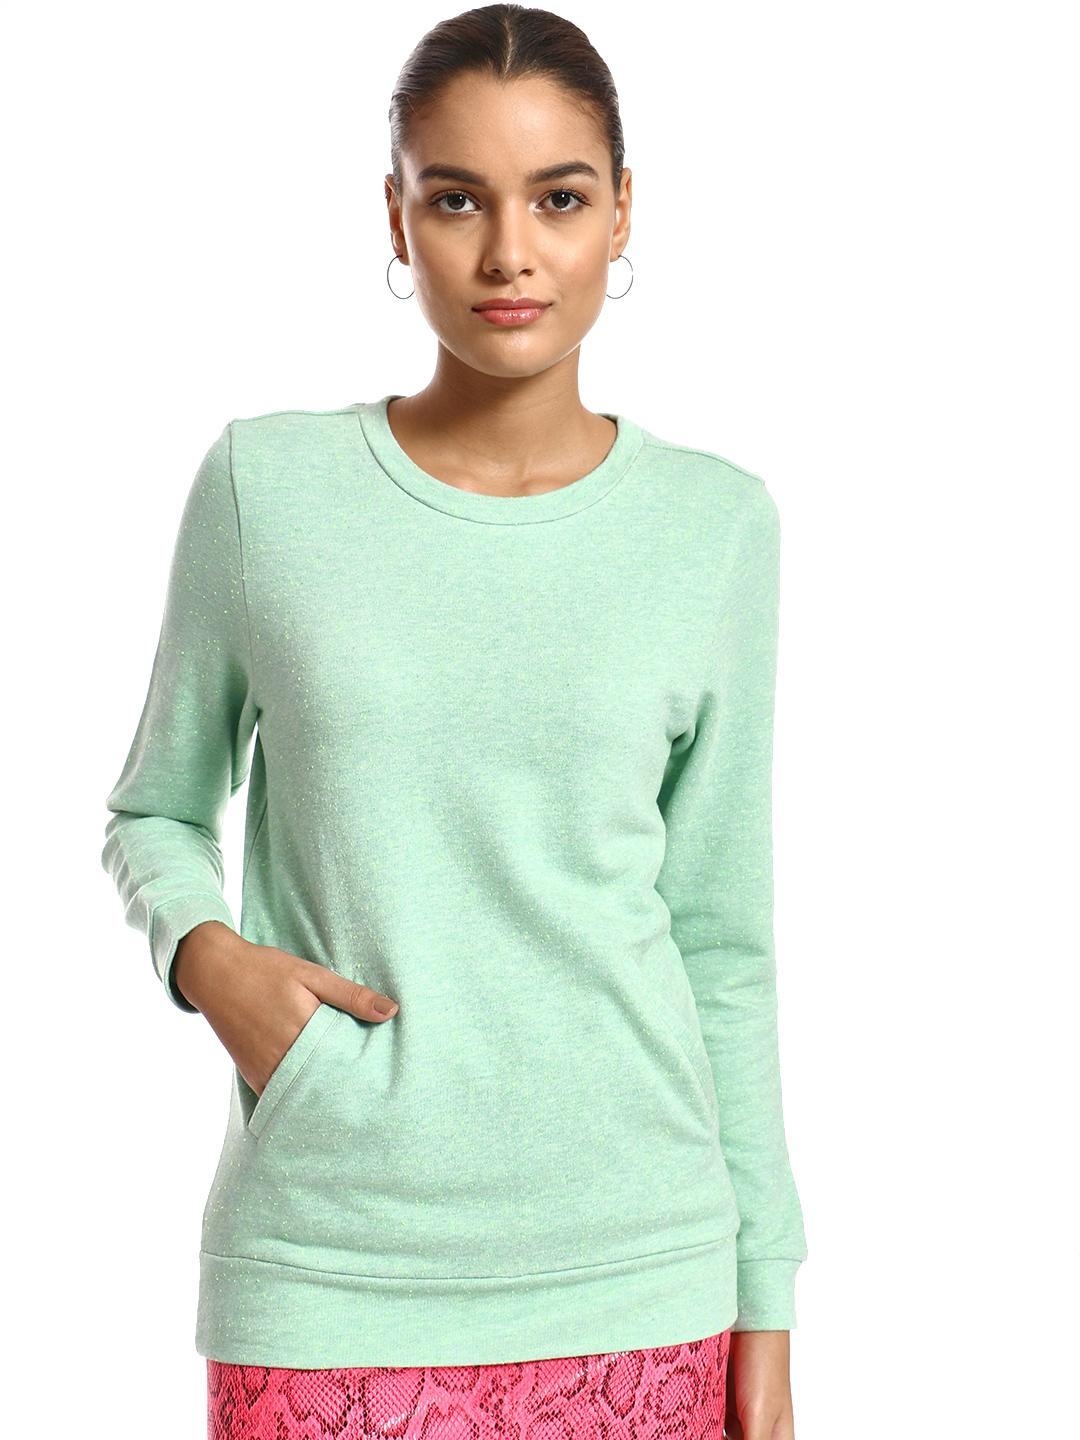 PostFold Green Kangaroo Pocket Knitted Sweatshirt 1